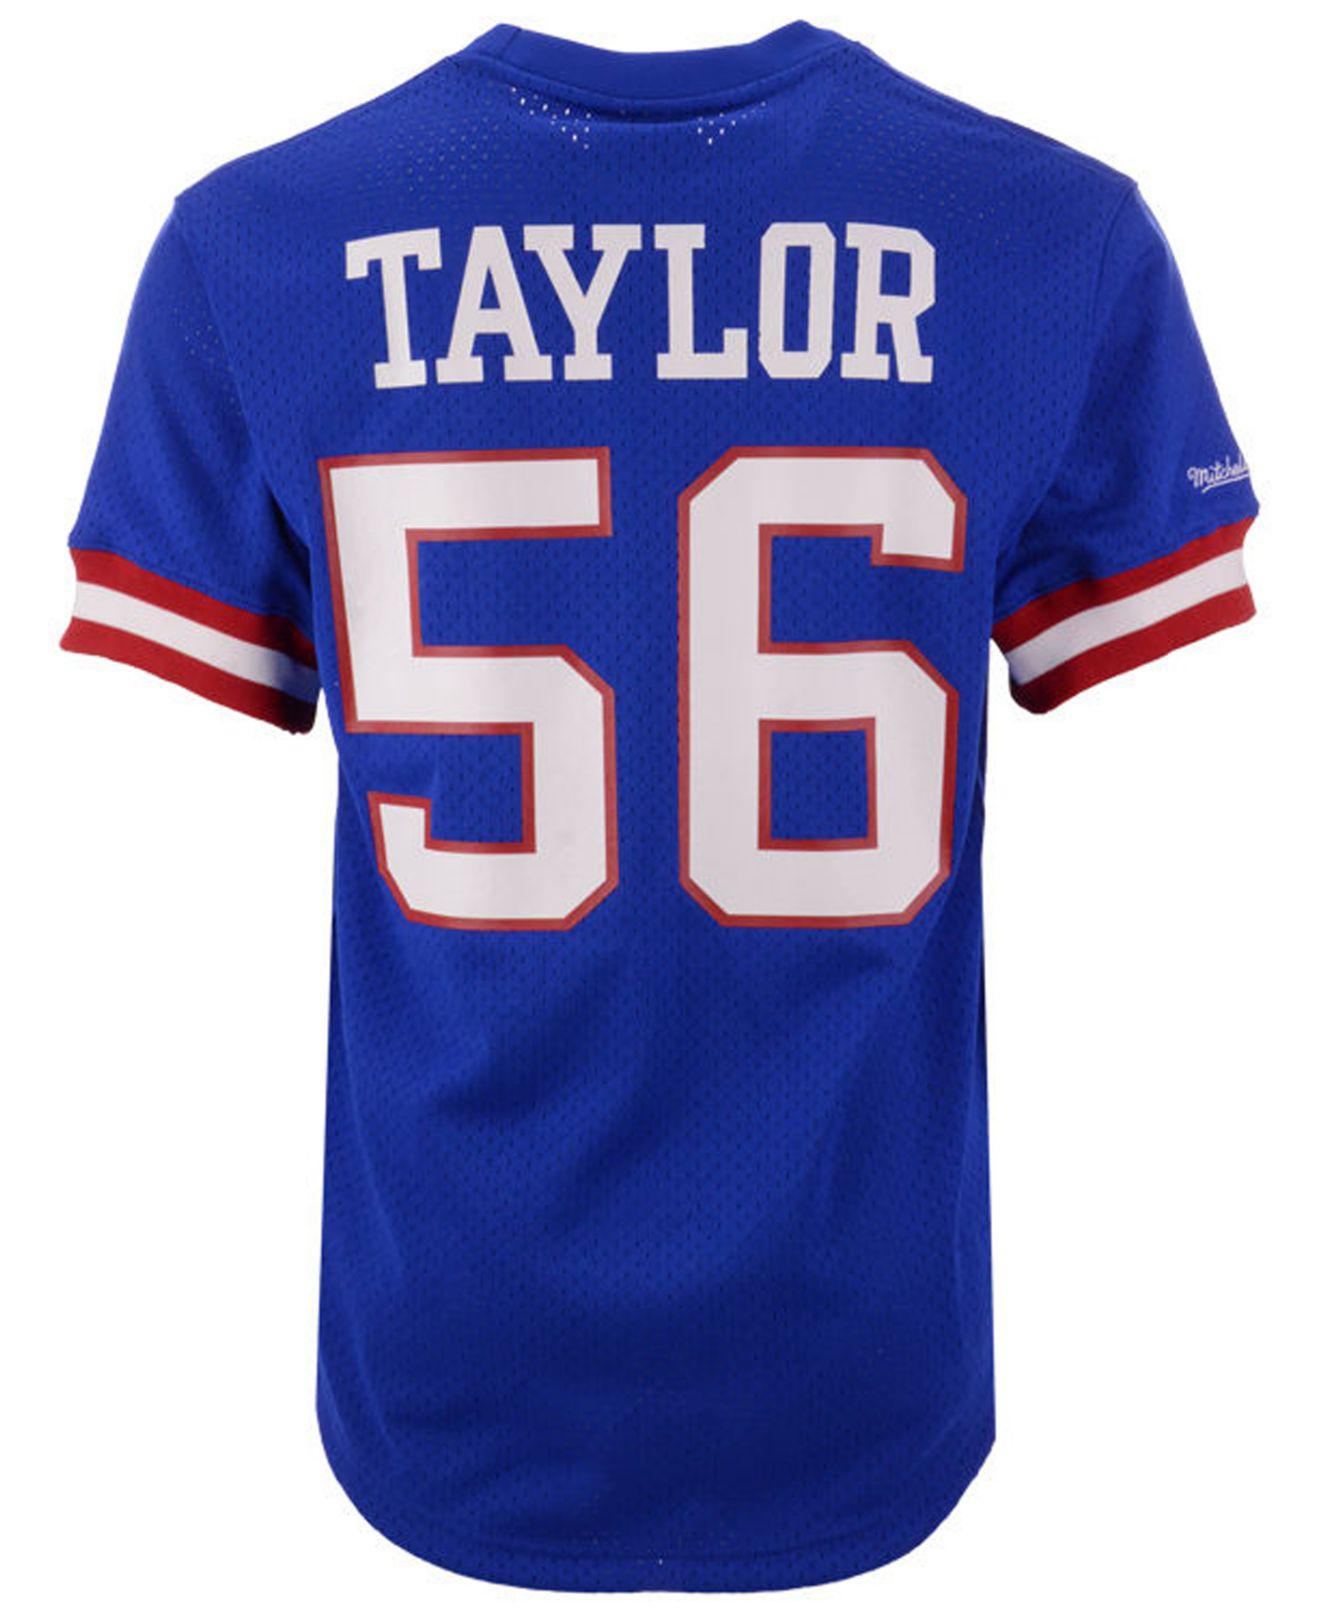 Lyst - Mitchell   Ness Lawrence Taylor New York Giants Mesh Name And Number  Crewneck Jersey in Blue for Men 6cbfad804